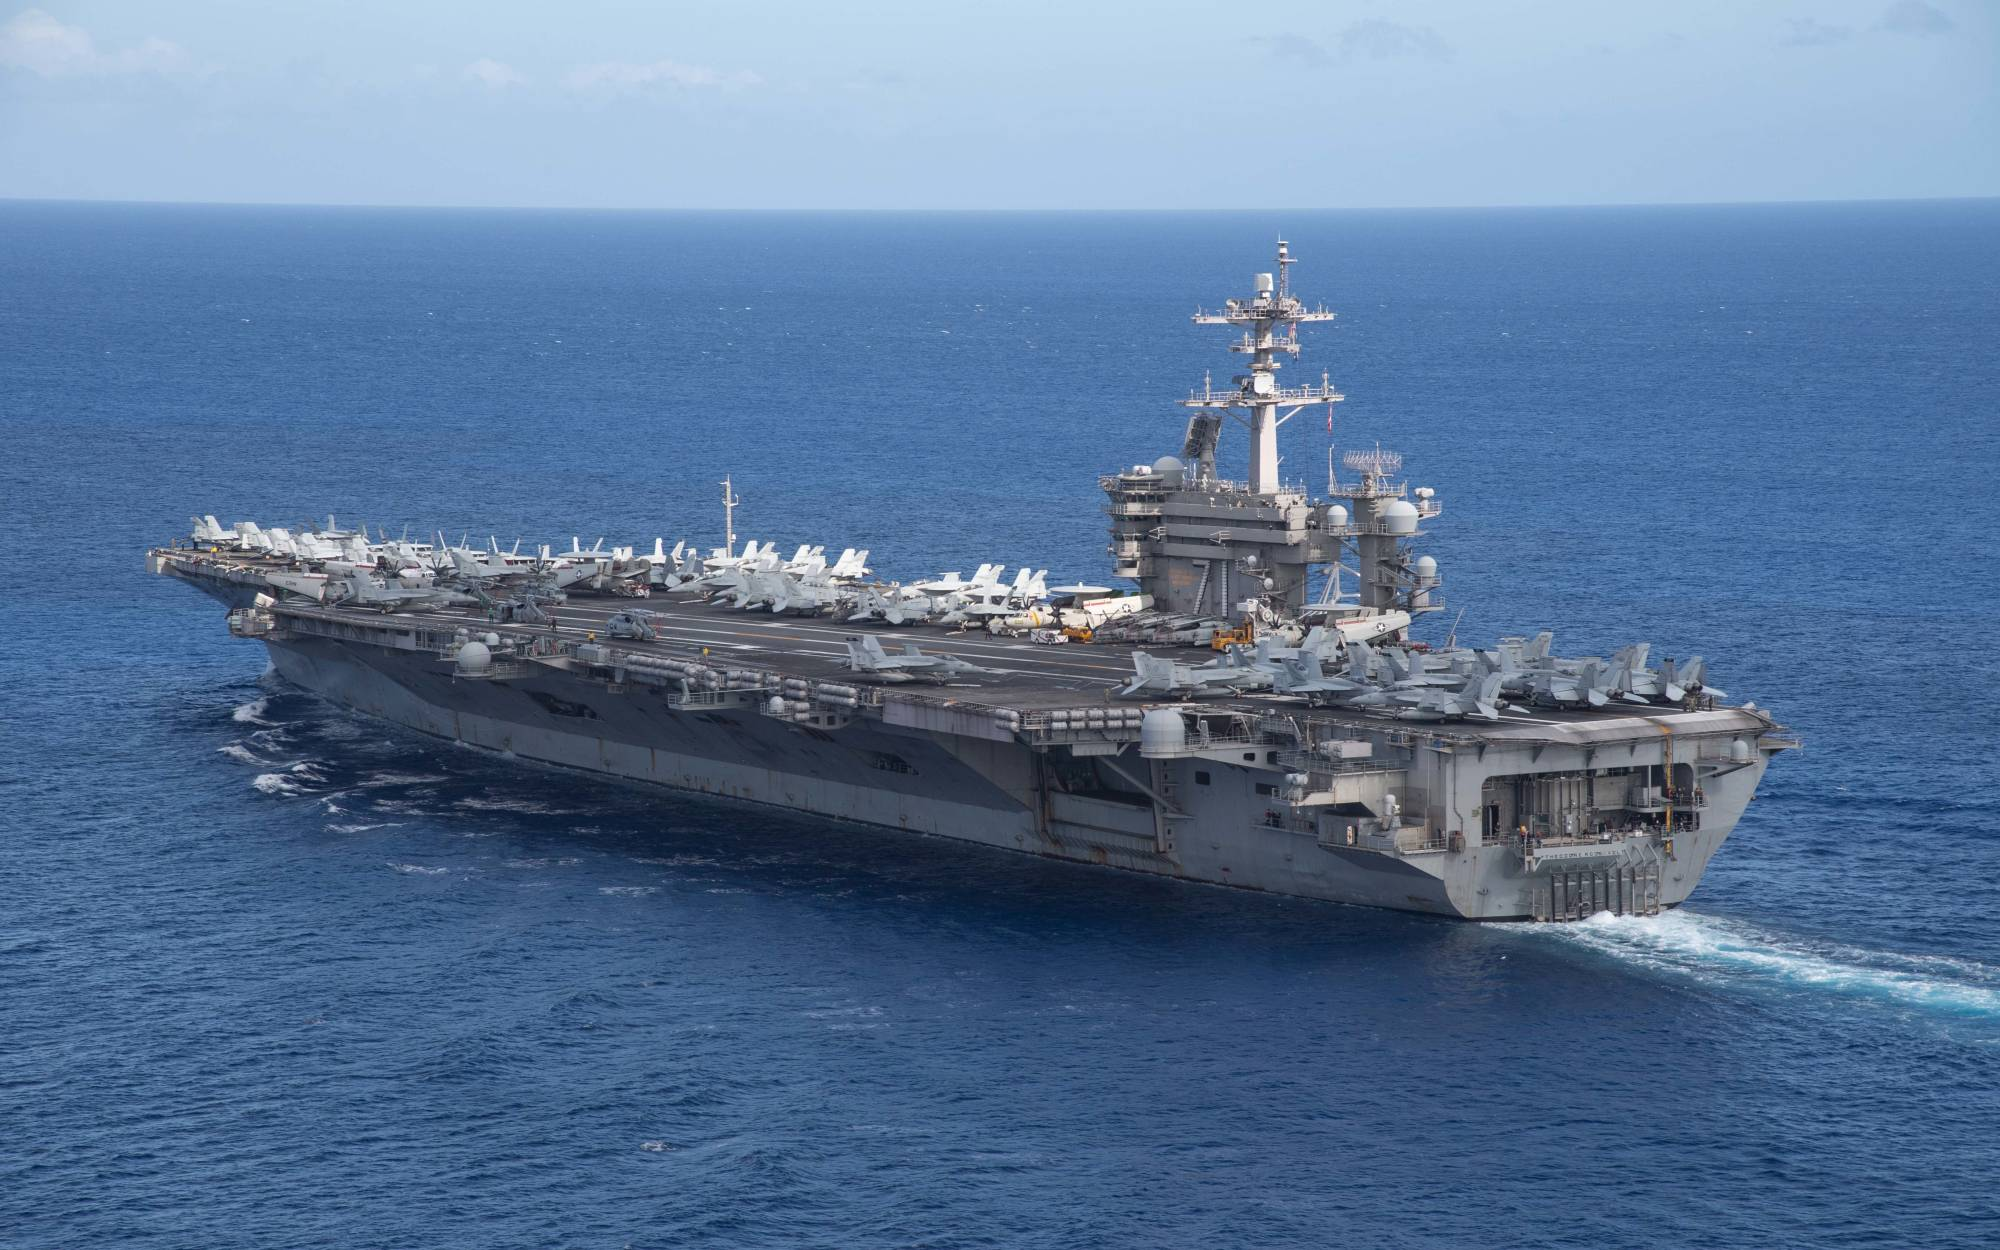 US Military News • Flight Operations Aboard the Aircraft Carrier USS Theodore Roosevelt • May 4 2021